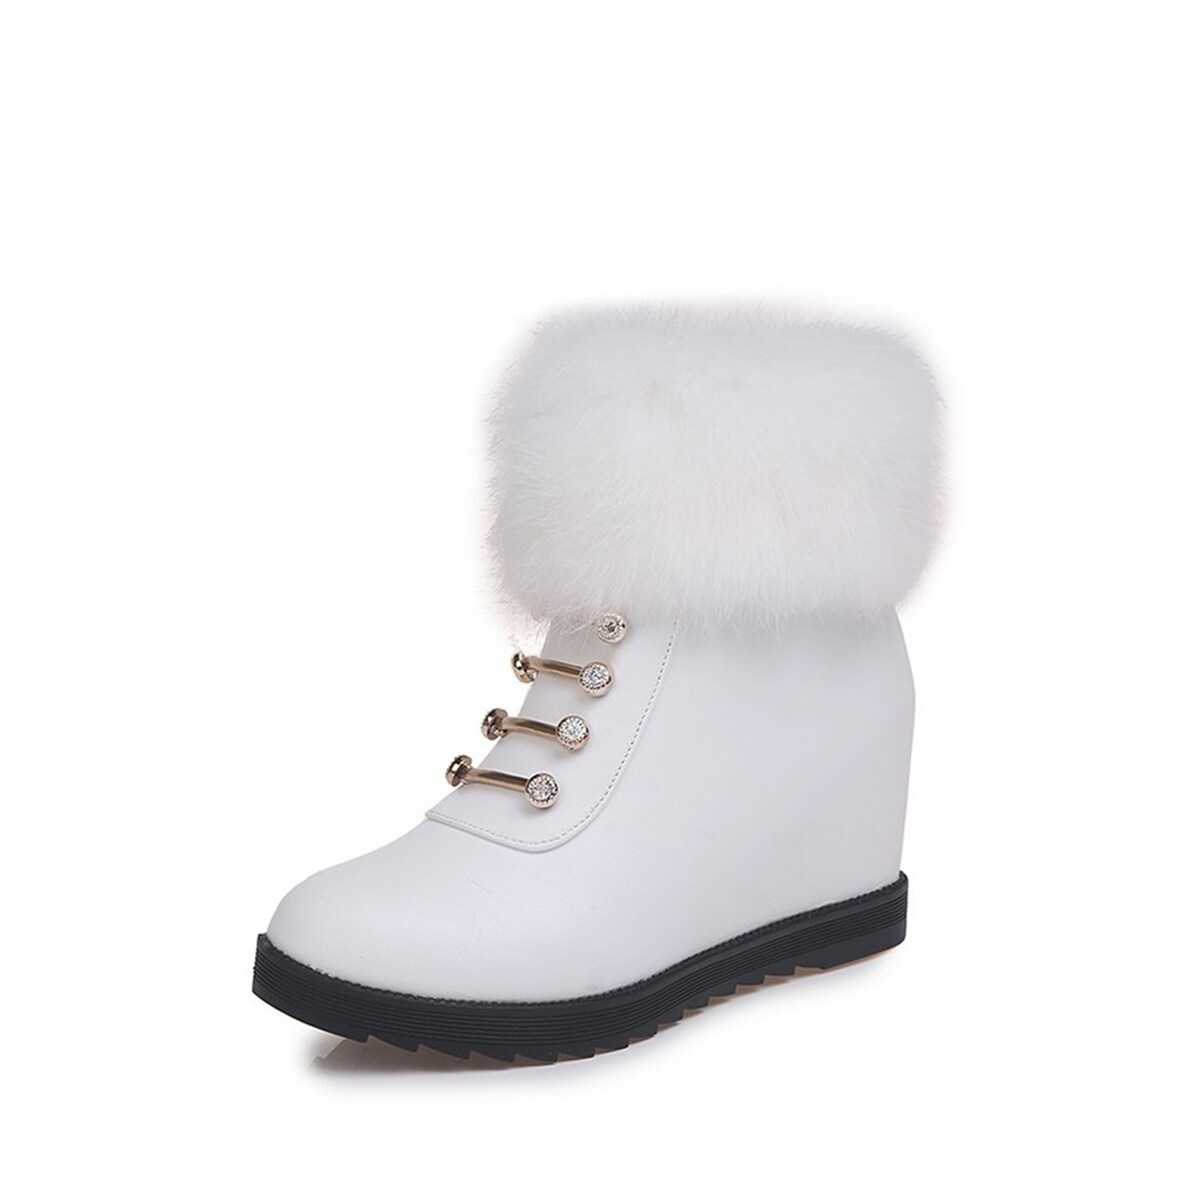 Faux Fur Decor Wedge Boots in White by ROMWE on GOOFASH